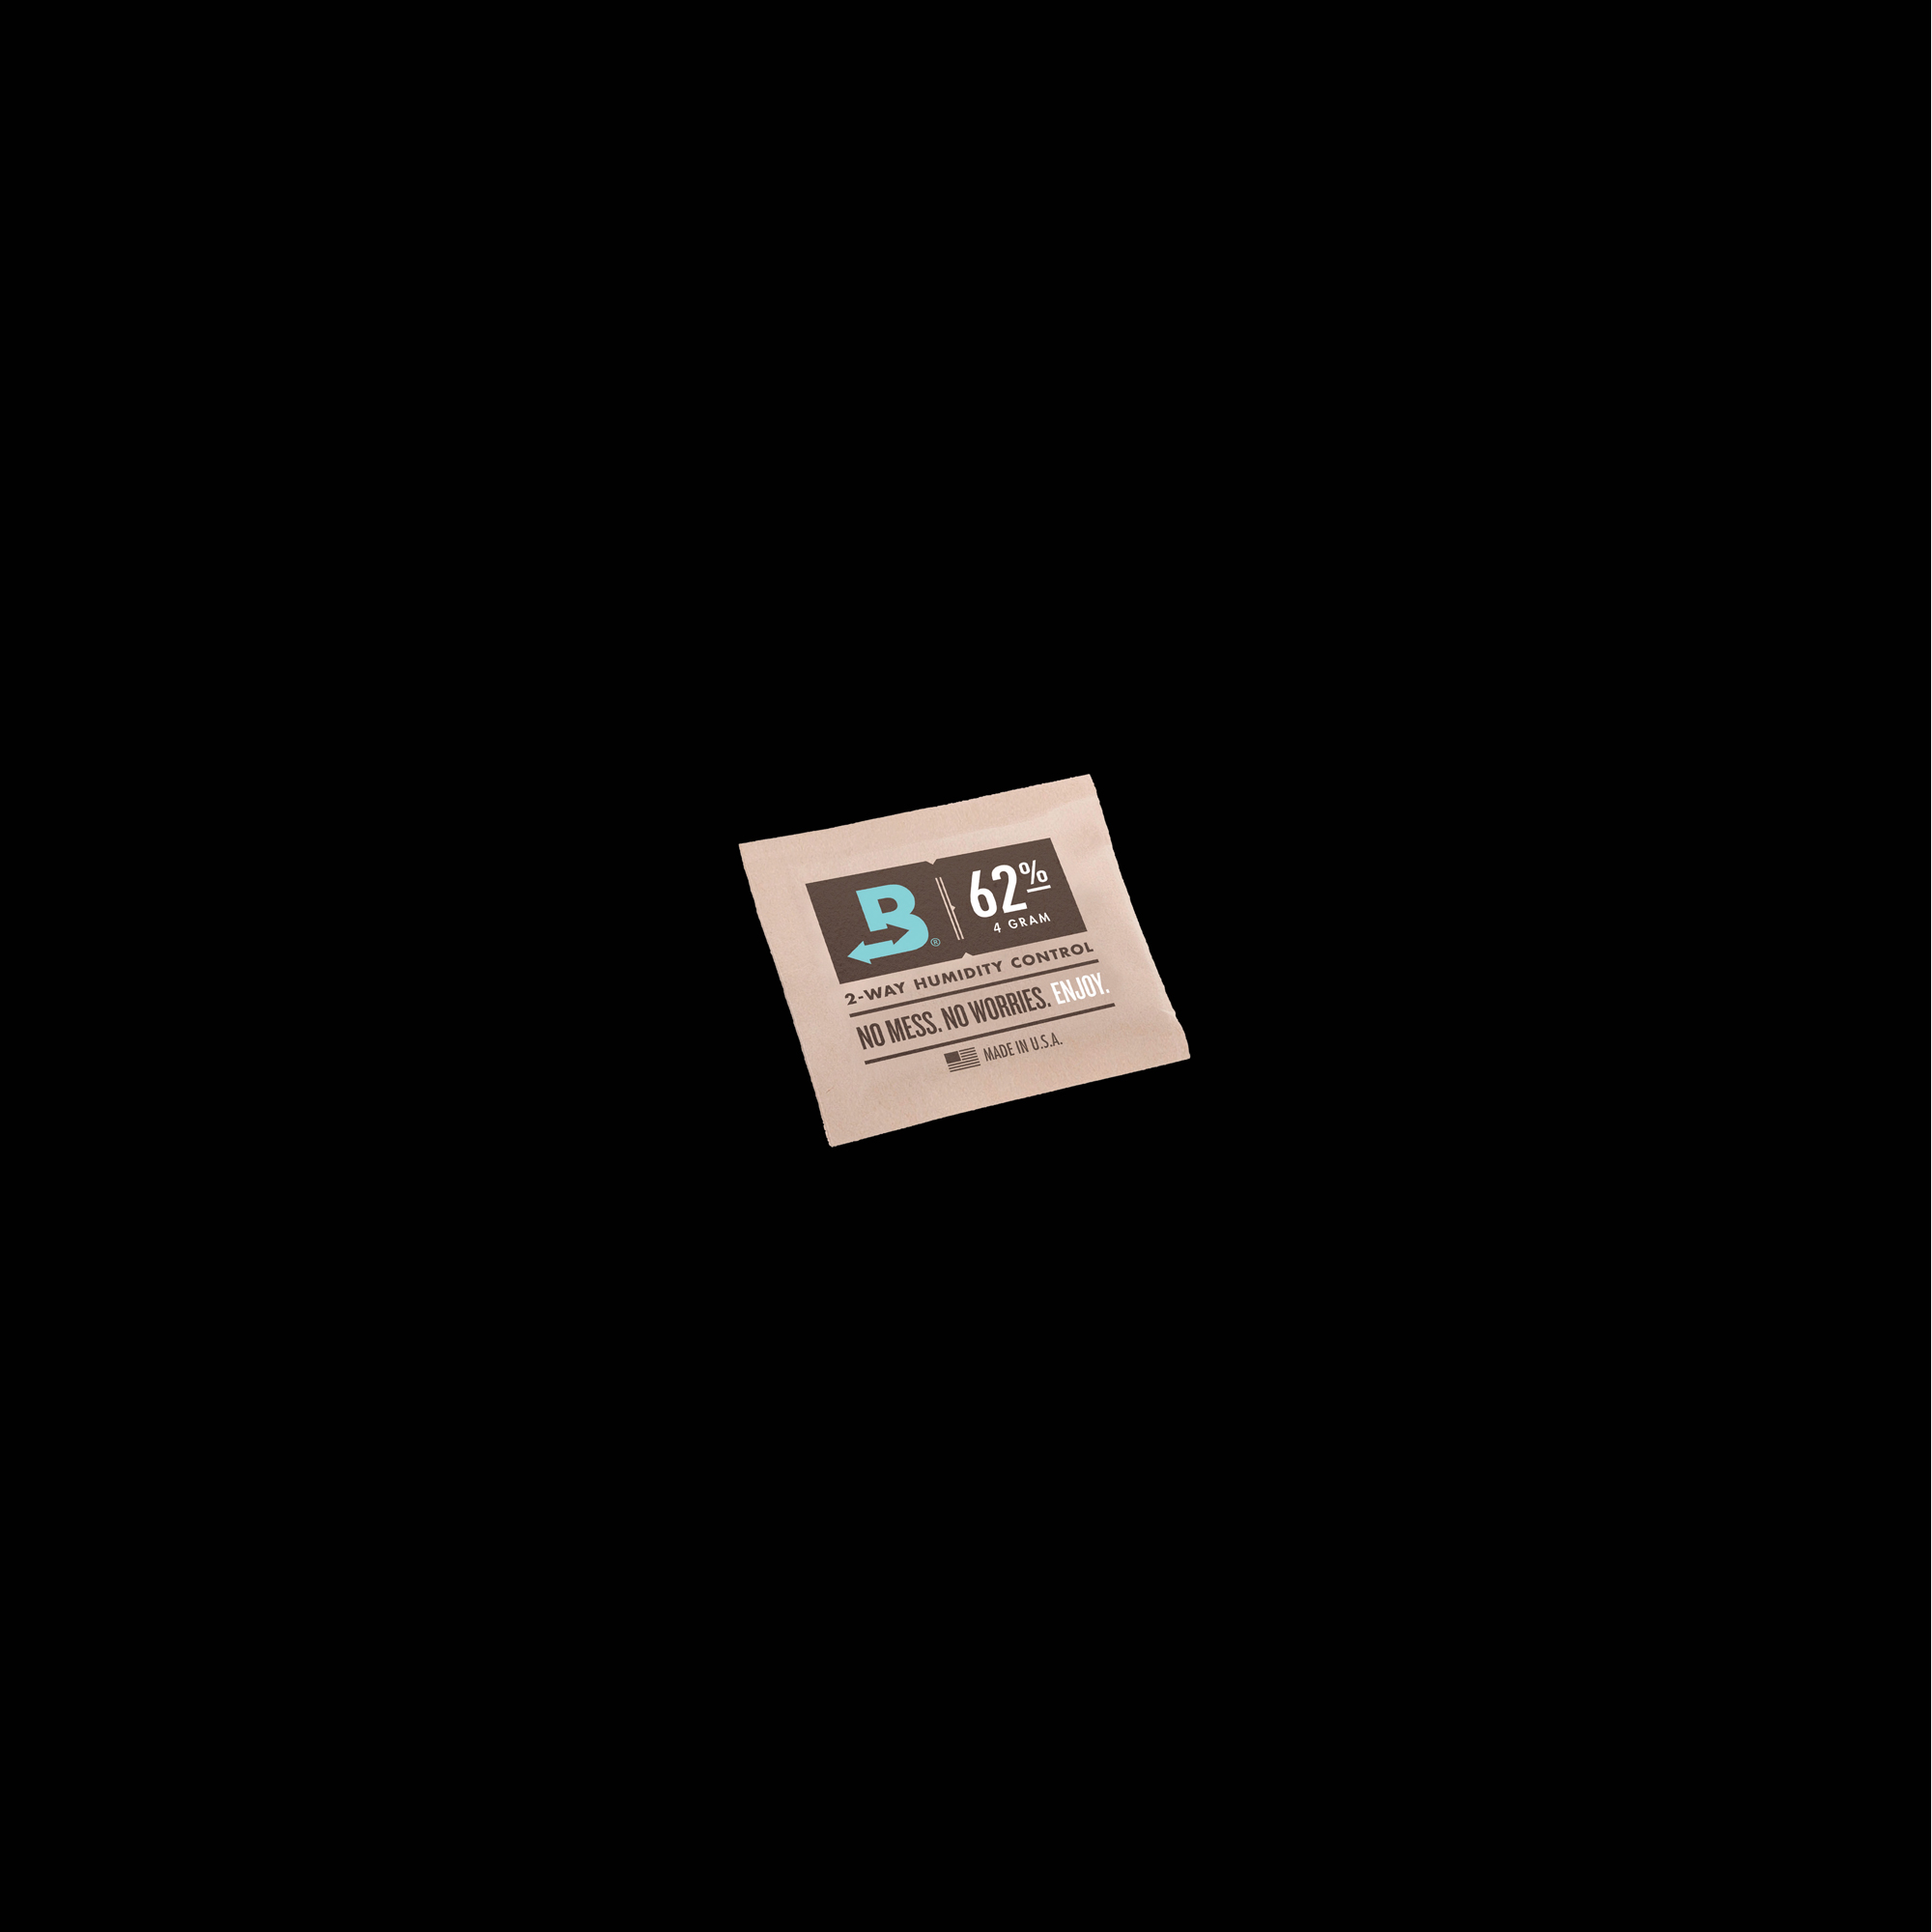 Boveda Humidity Controller 62% 4 gram packet